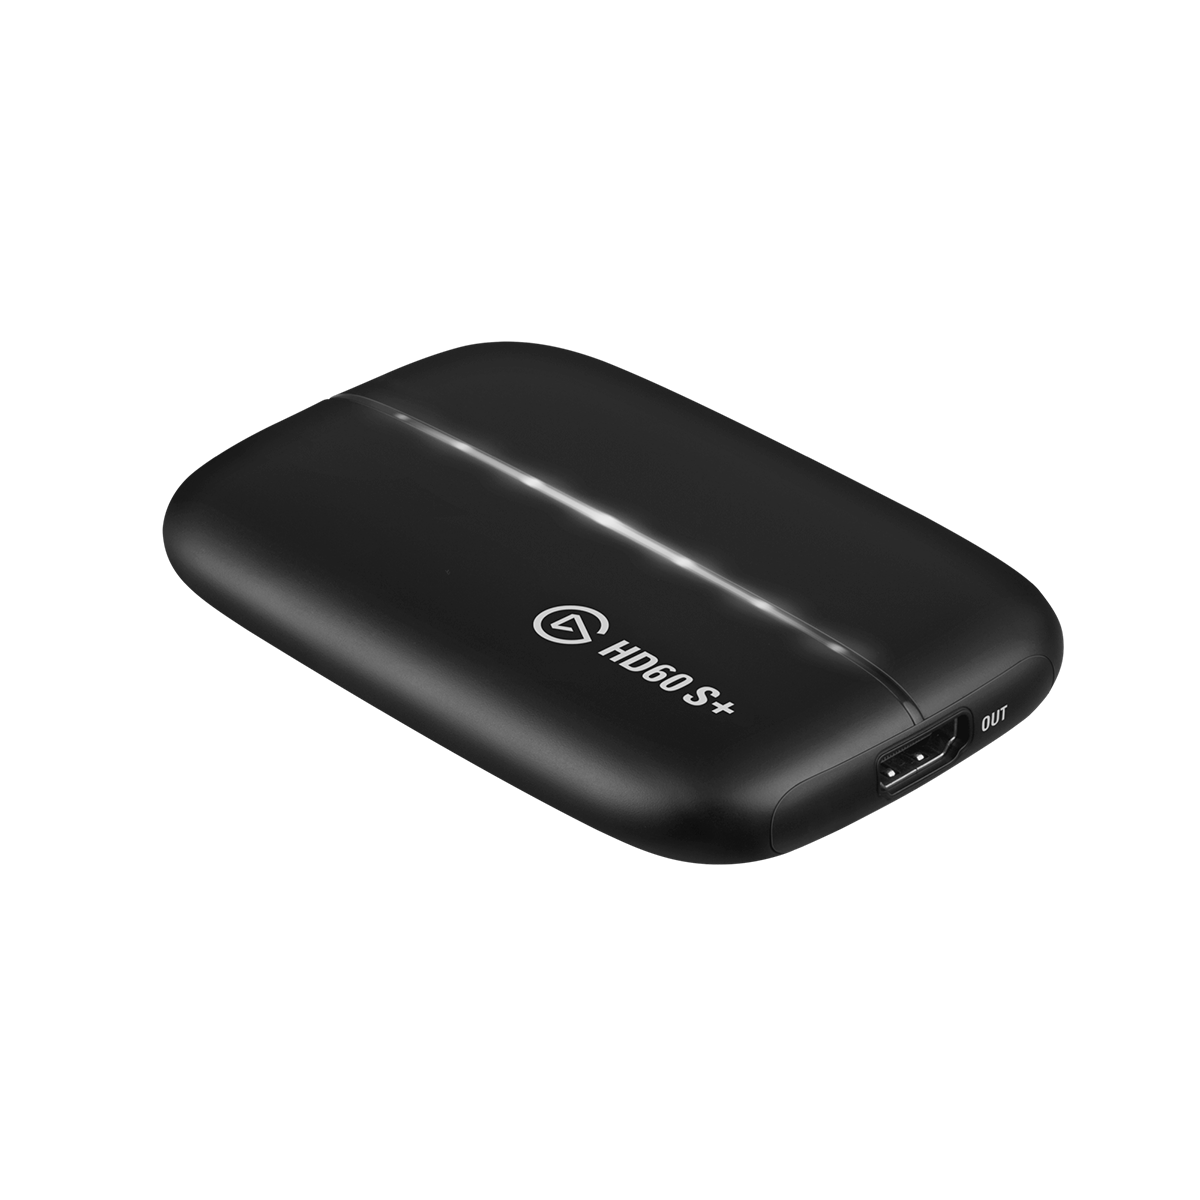 HD60Sdevice image gallery